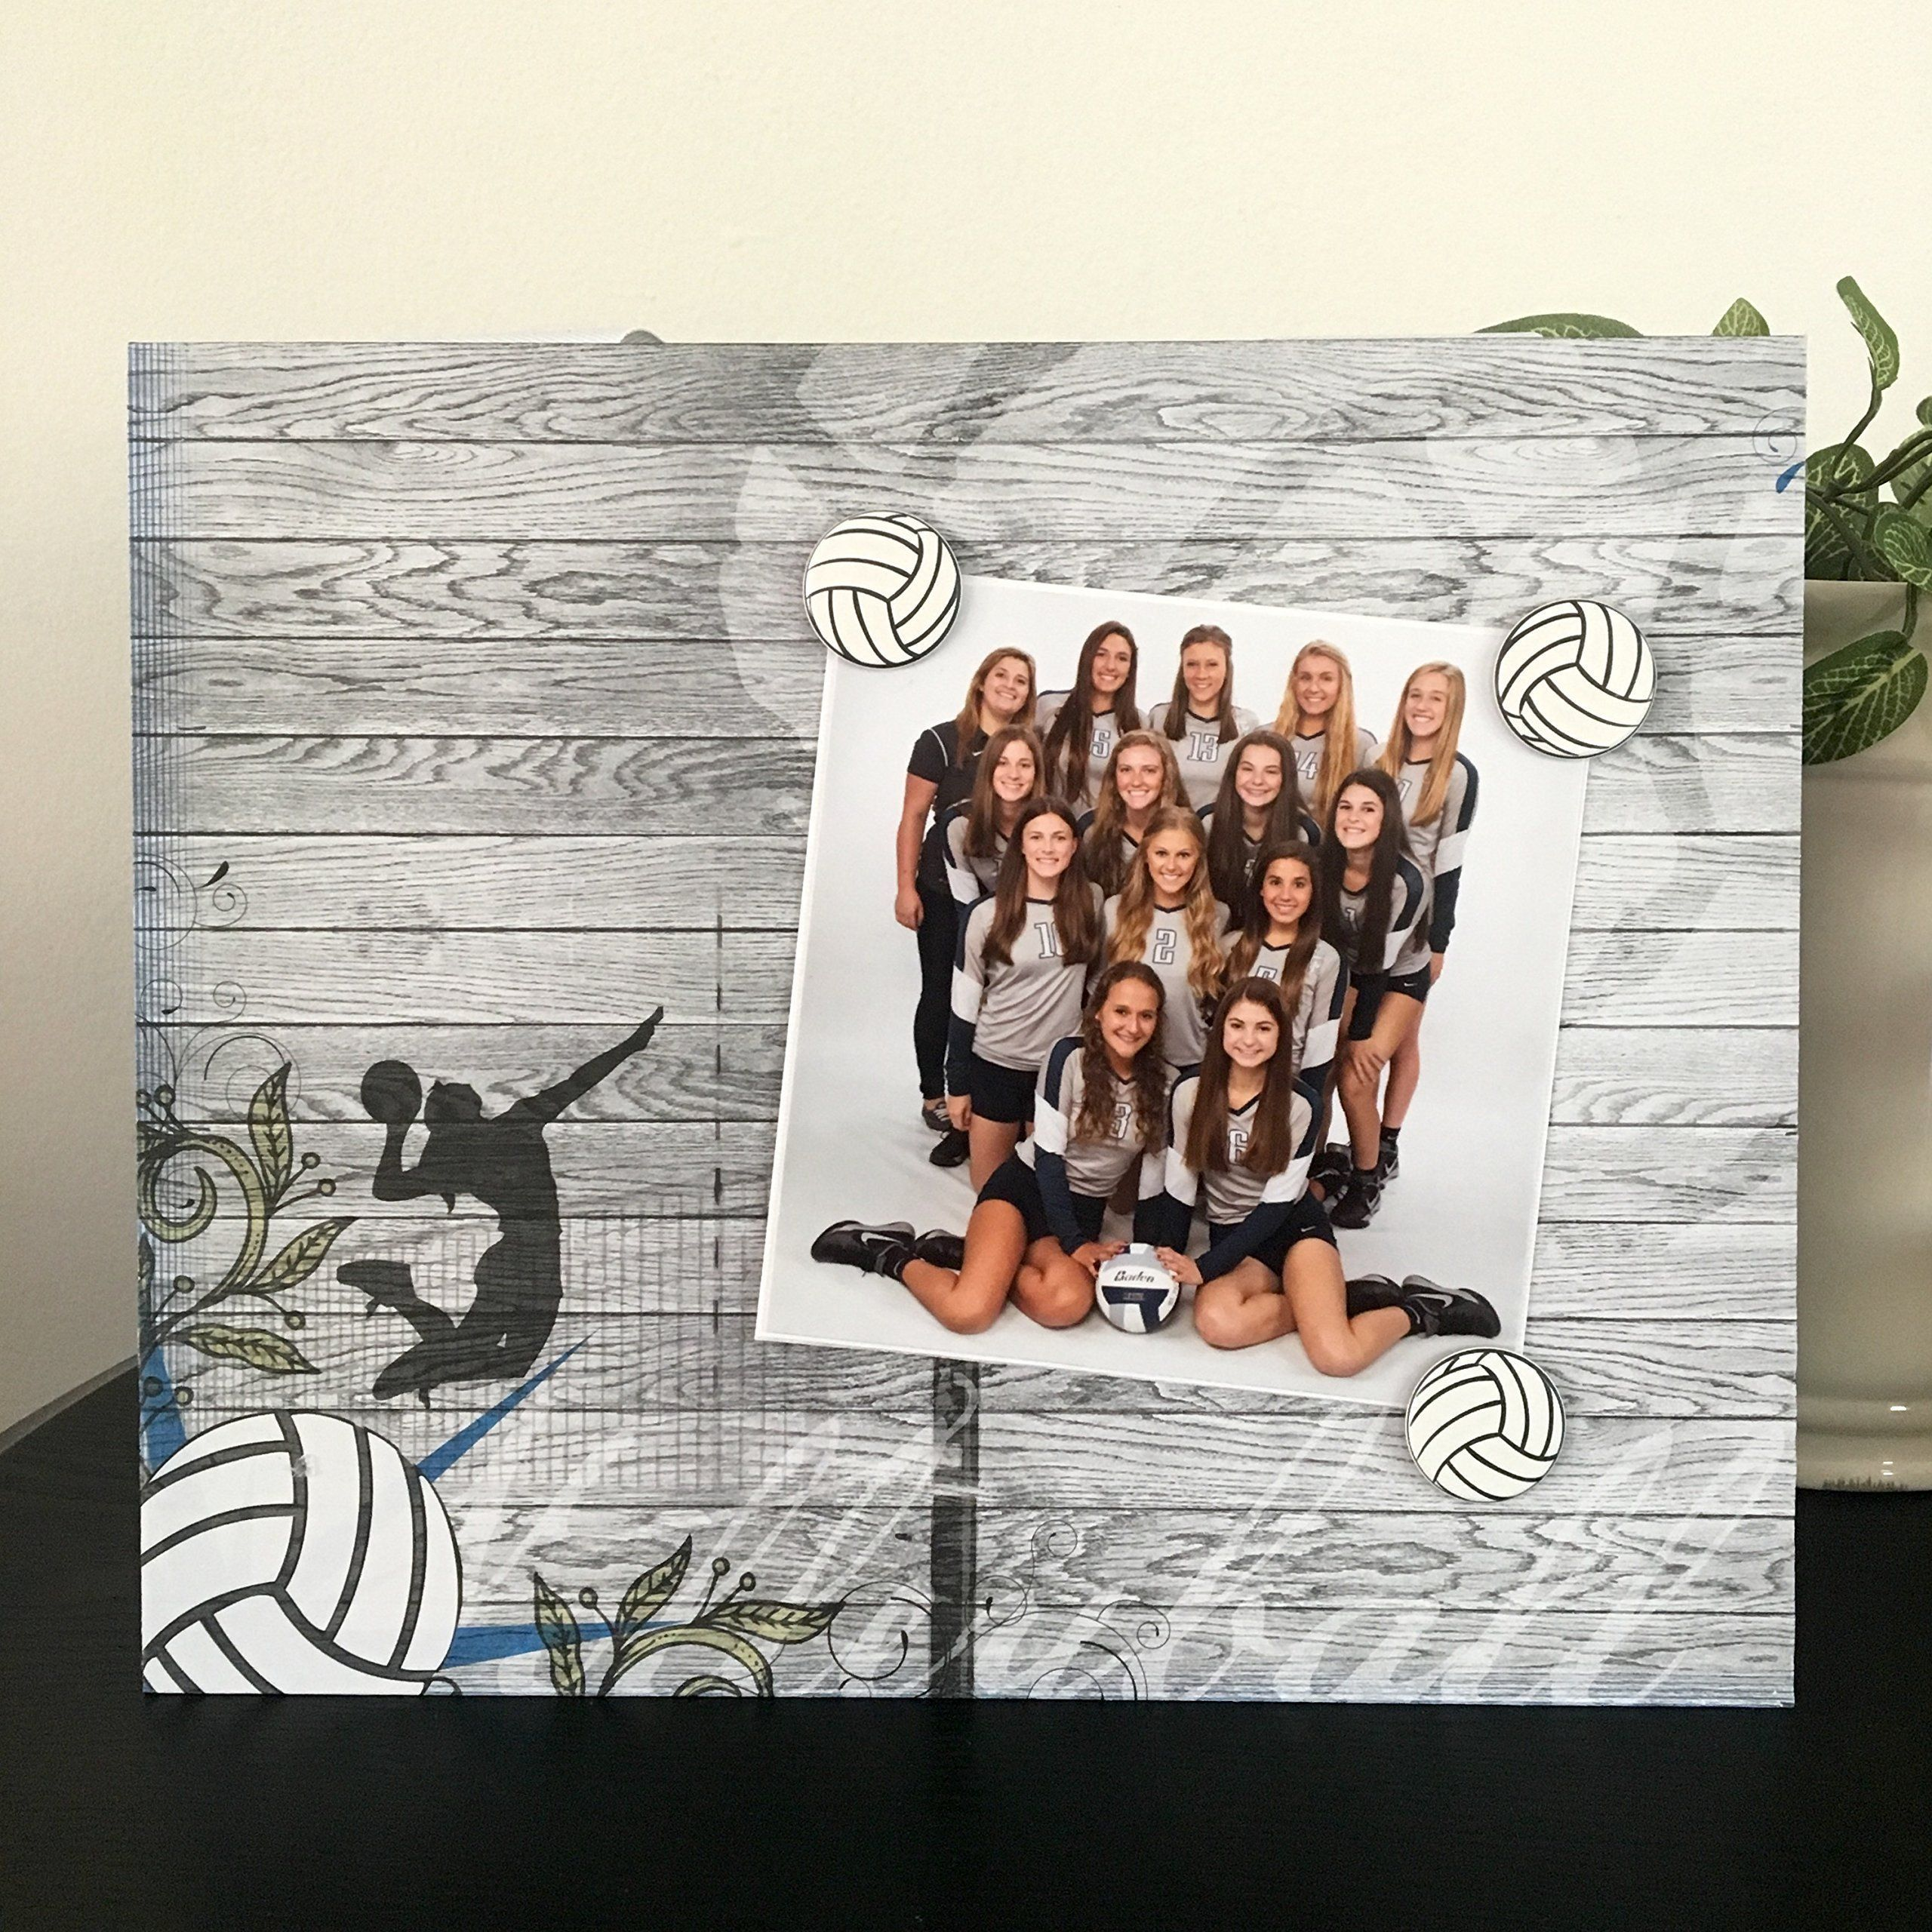 Volleyball picture frames choice image craft decoration ideas hardcourt volleyball v1 sports game coach teen girl team mom hardcourt volleyball v1 sports game coach jeuxipadfo Gallery